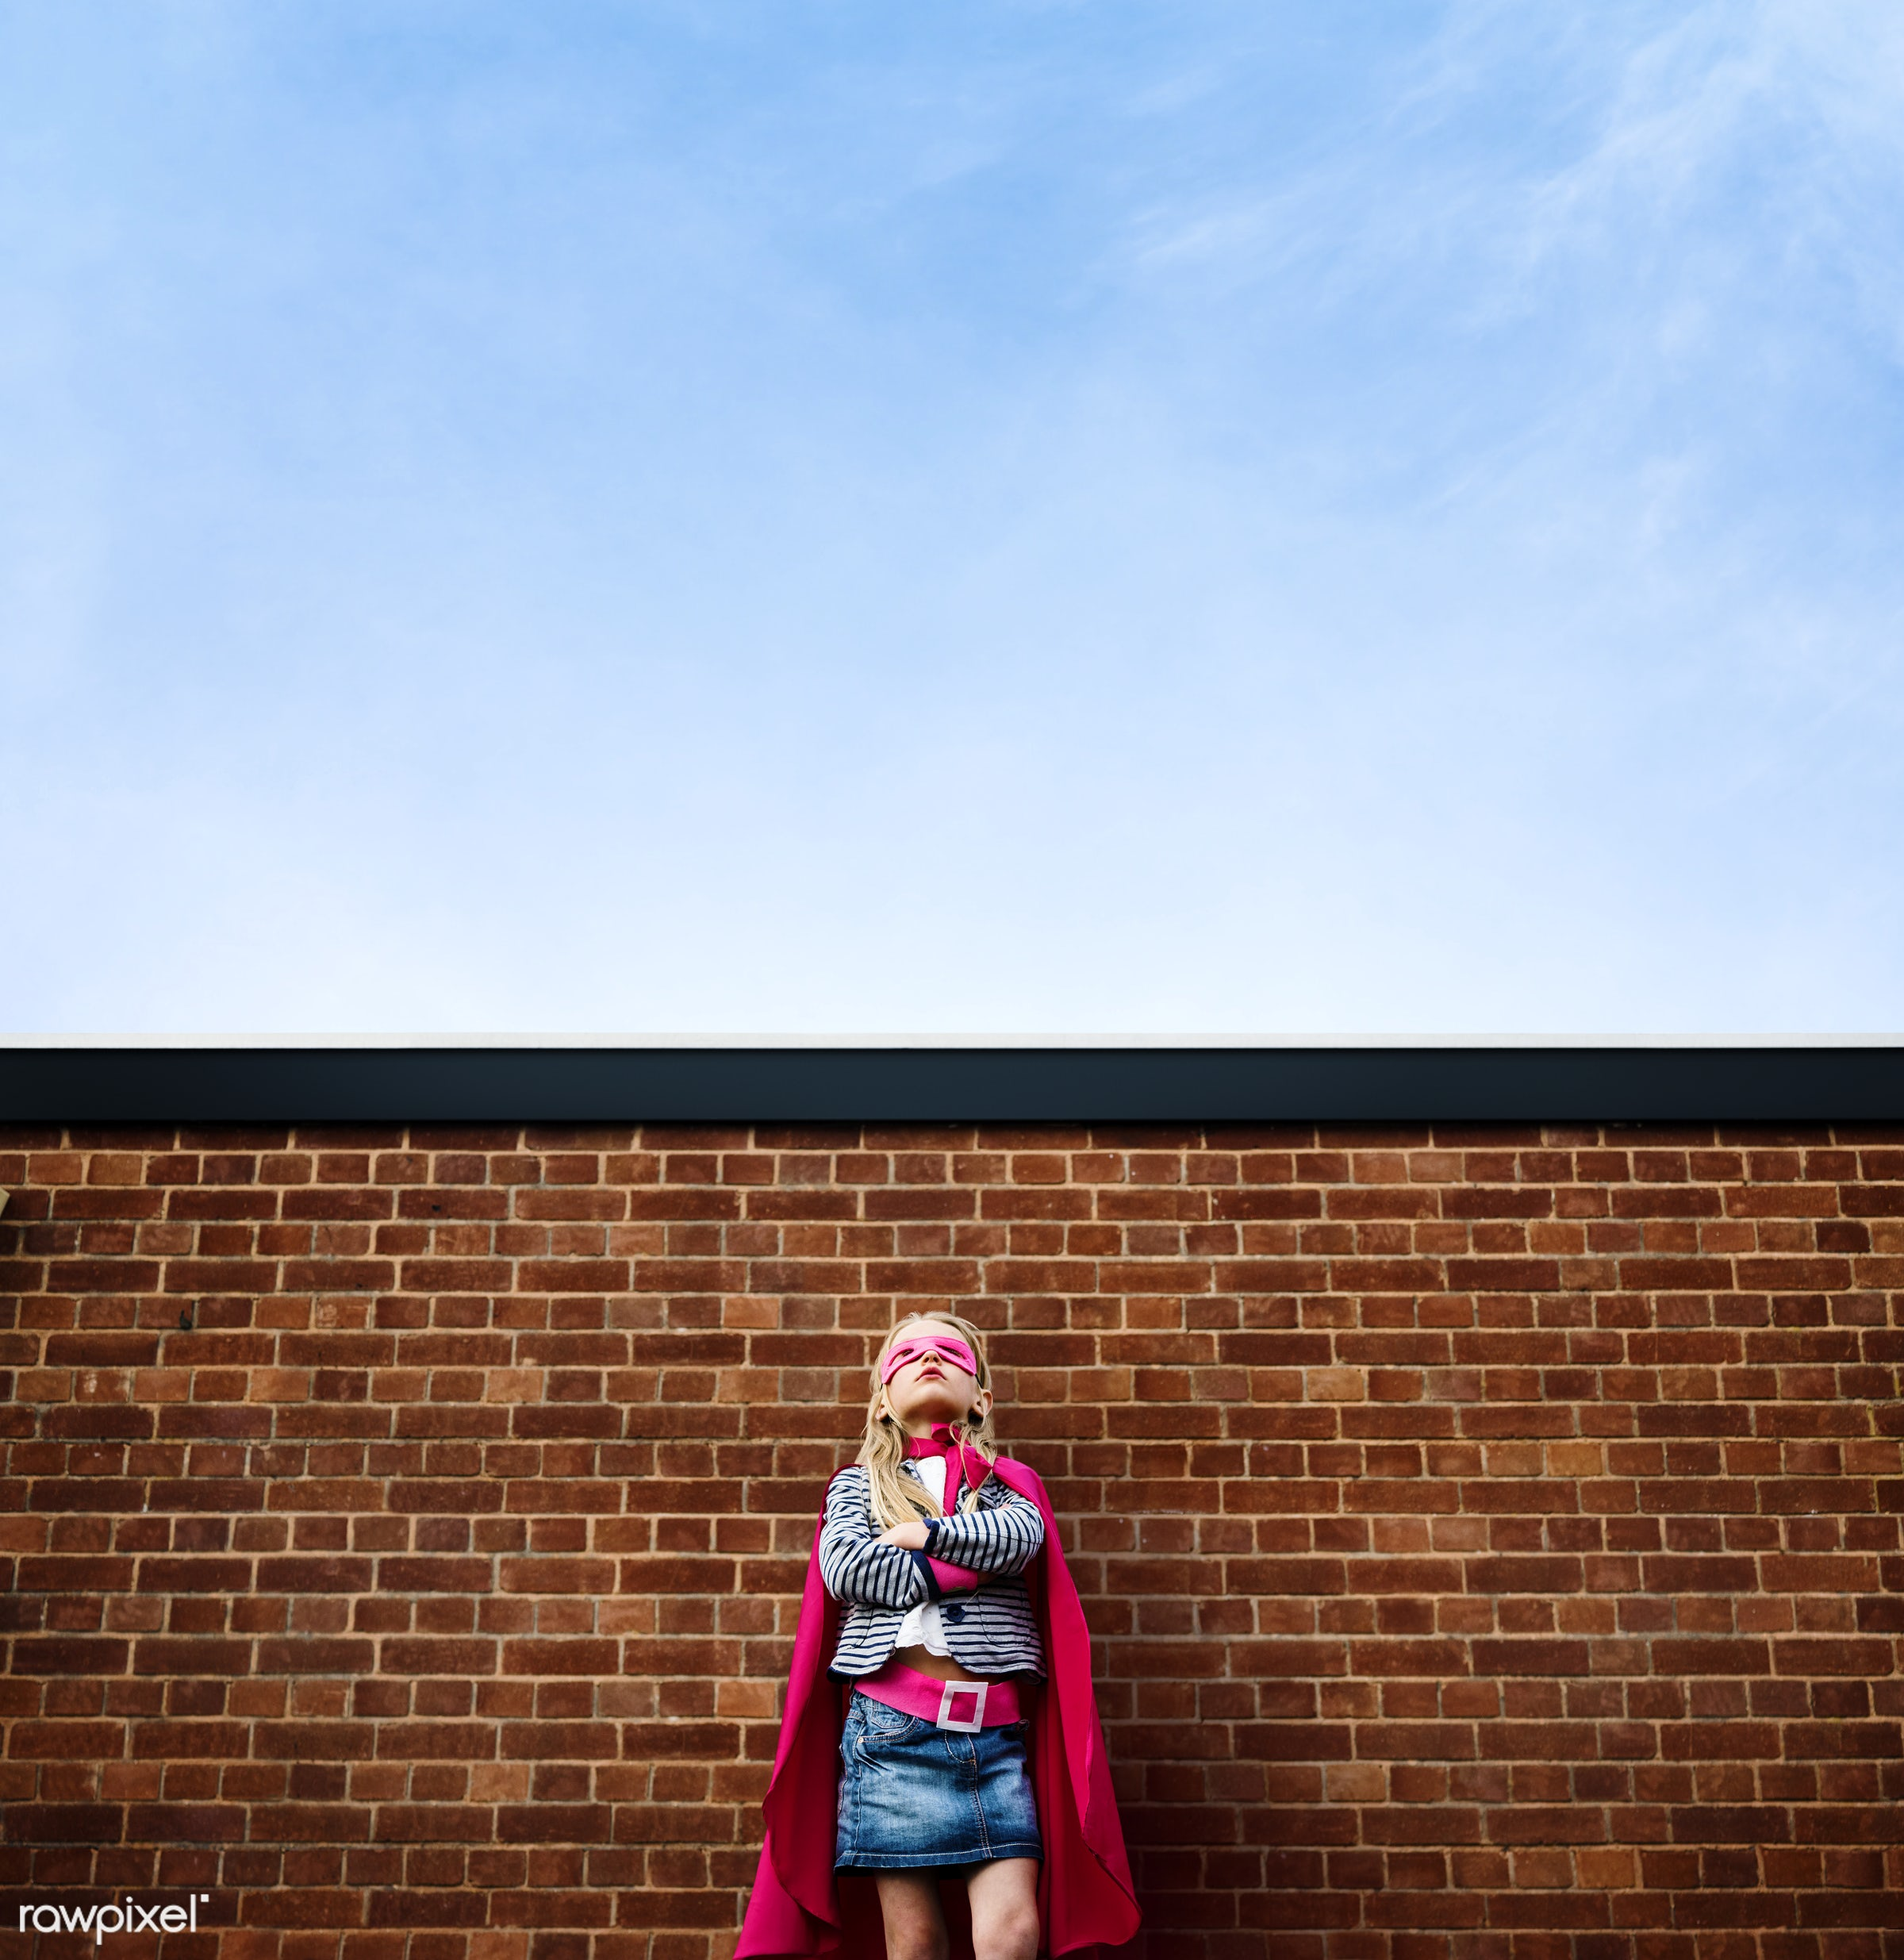 superhero, activity, aspiration, aspirations, brick wall, building, cheerful, child, childhood, color, colorful, confidence...